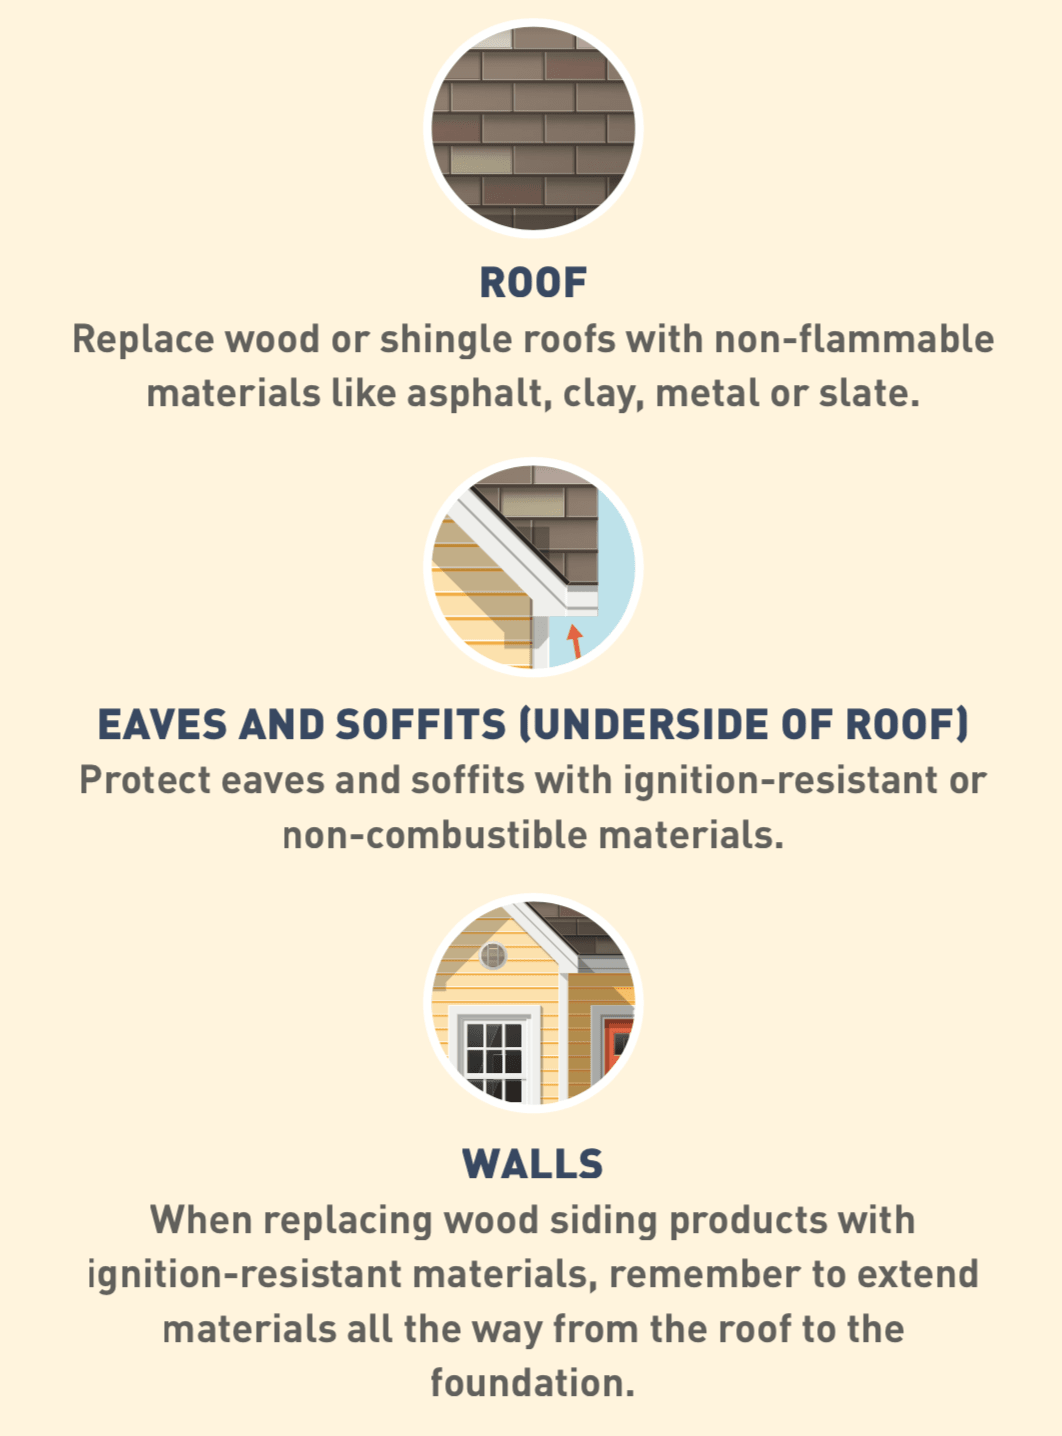 Illustrated icon of a roof, icon of the underside of a roof, and icon of house walls.